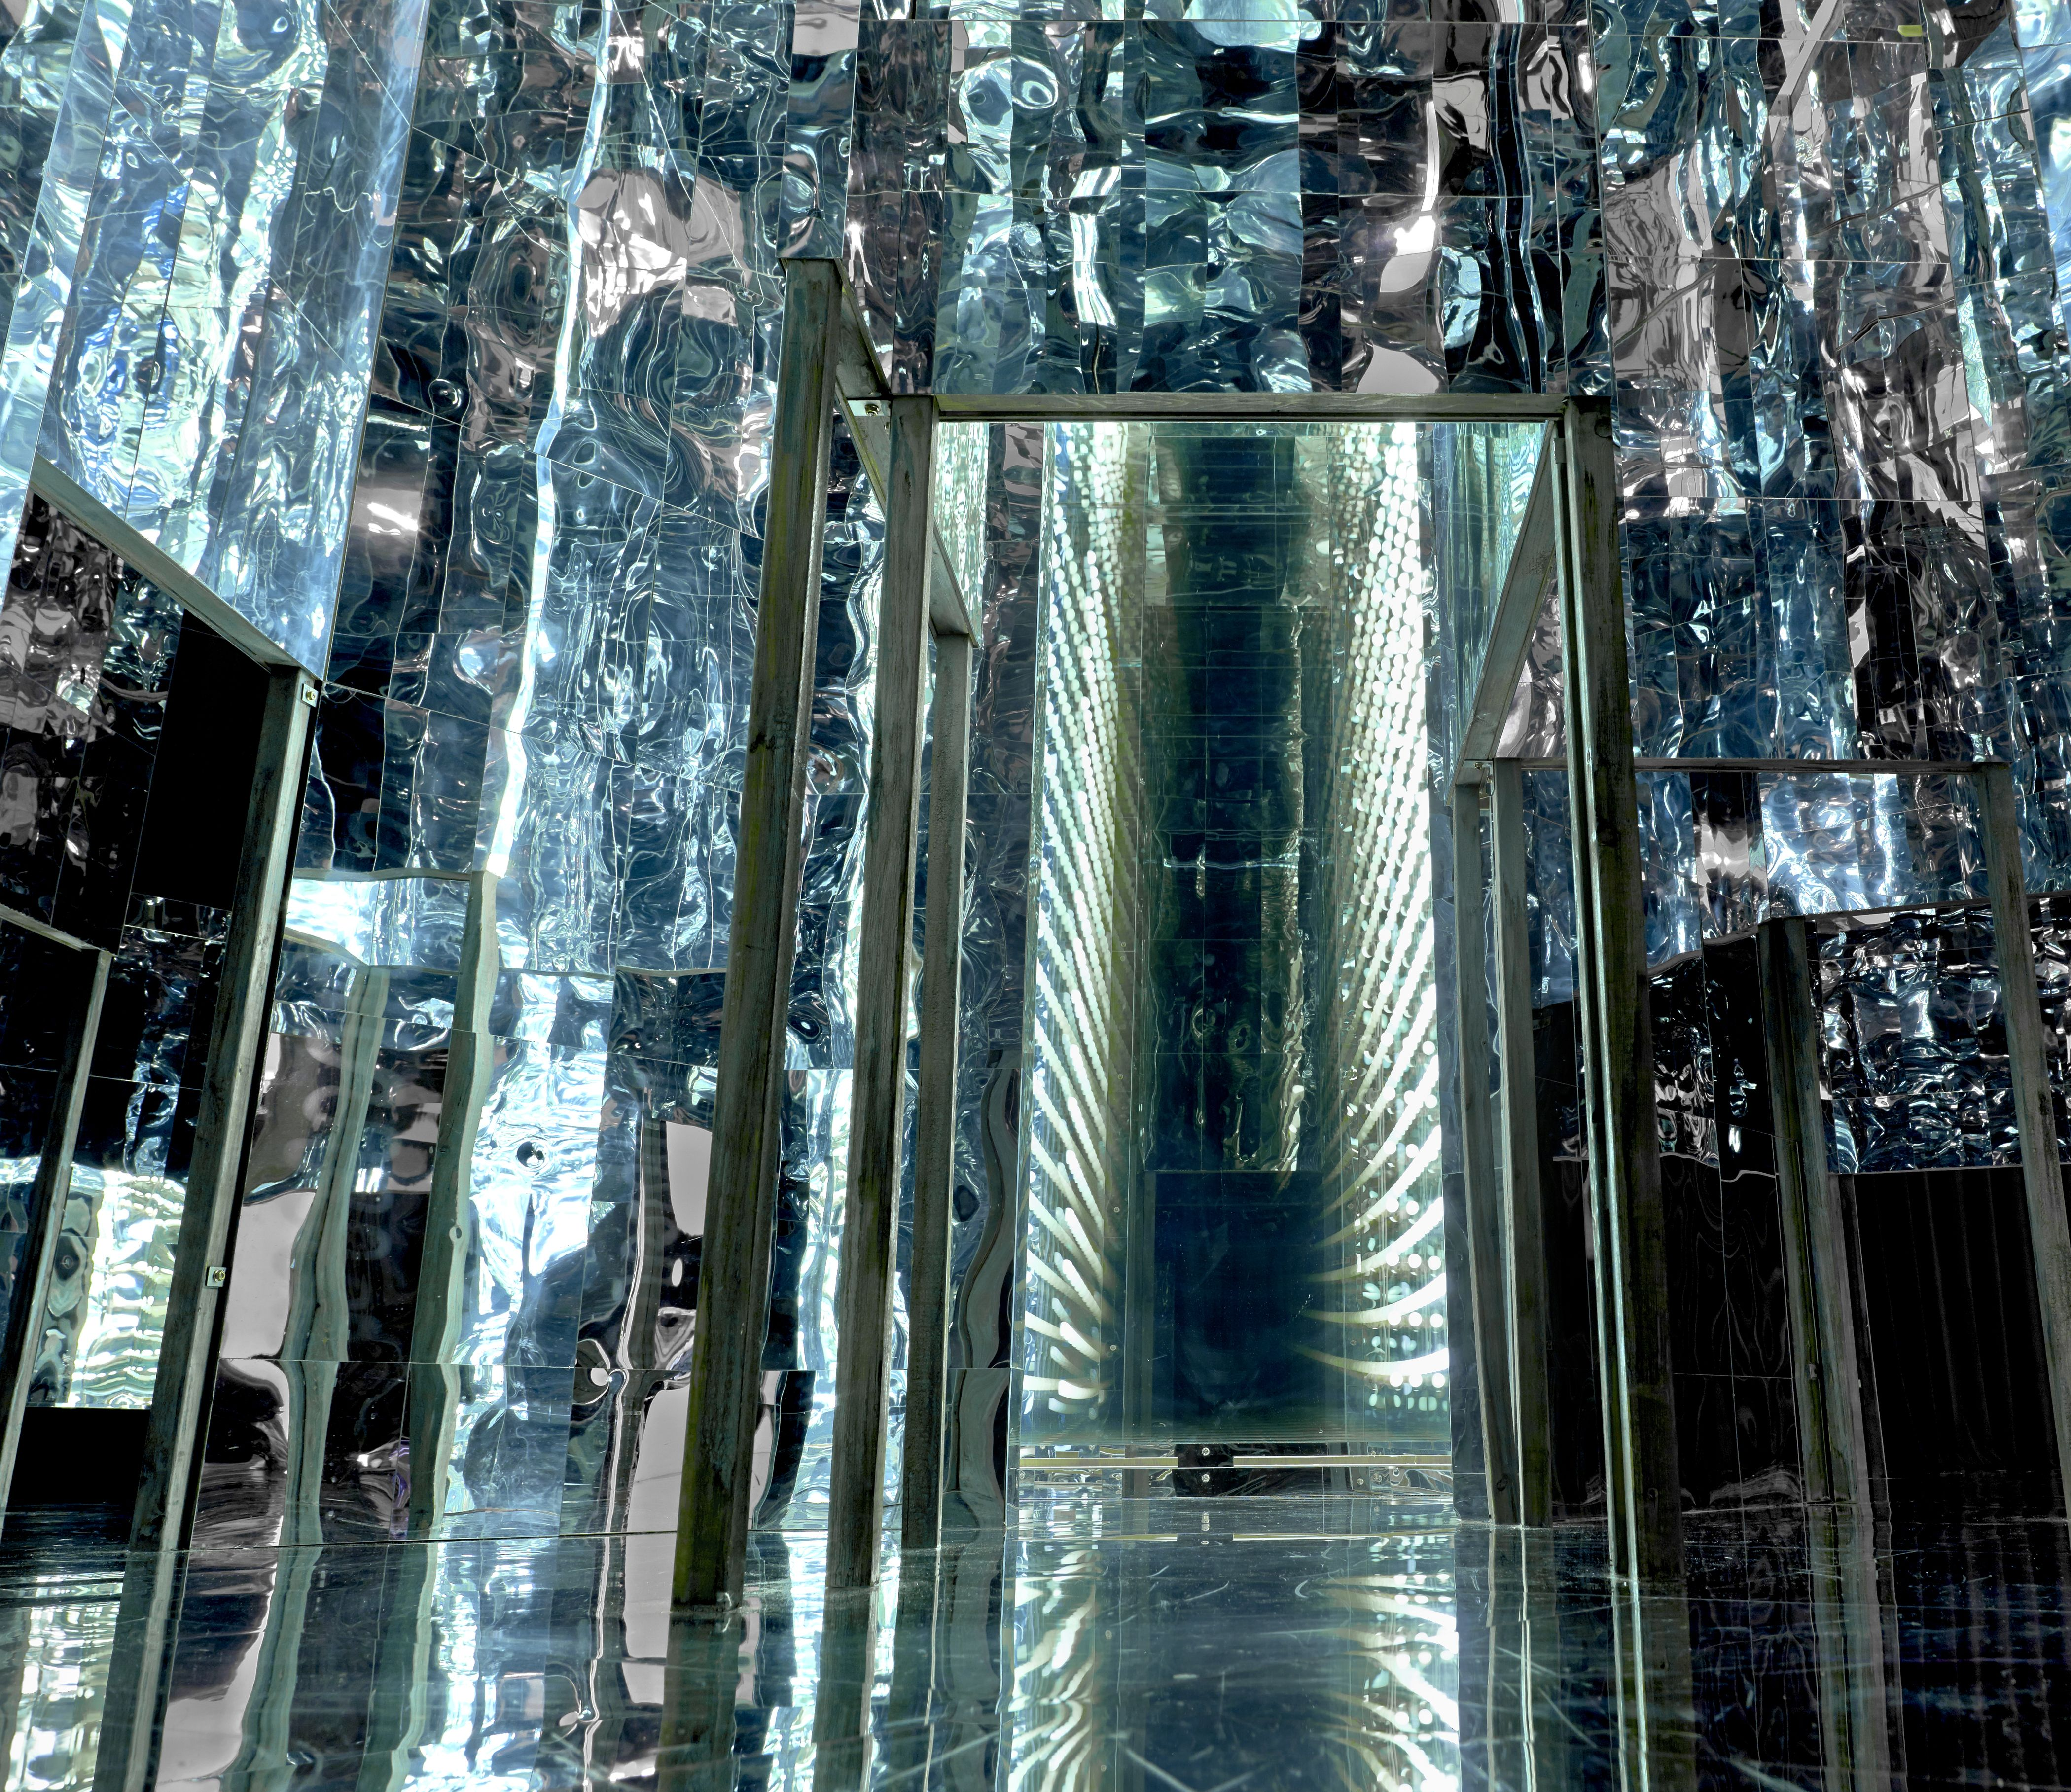 Mirror Room: Lee Bul's Labyrinth Of Infinity Mirrors: Via Negativa II